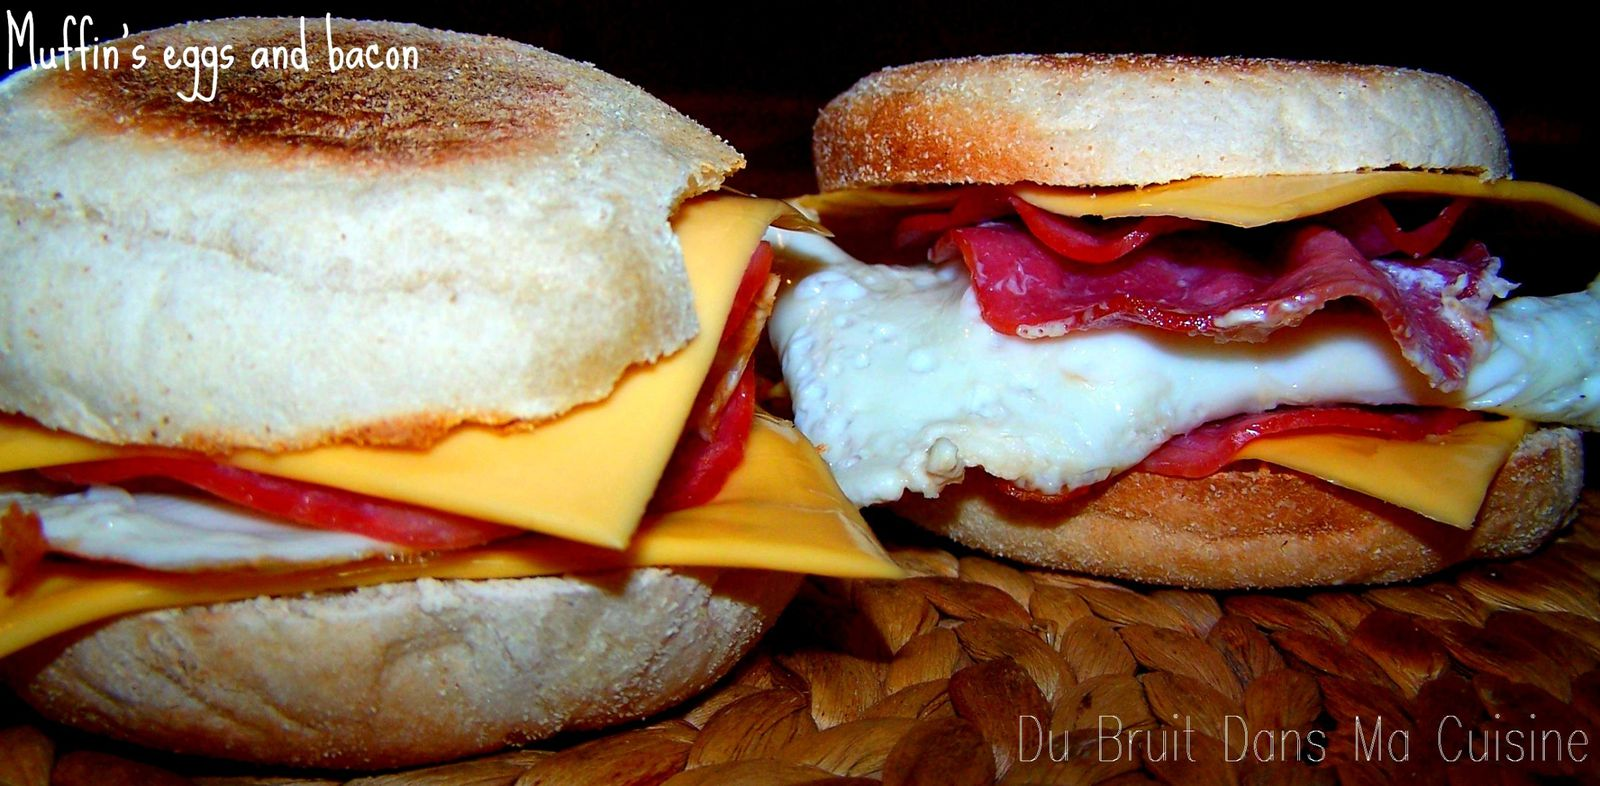 Muffin 39 s eggs and bacon du bruit dans ma cuisine - Du bruit dans ma cuisine ...